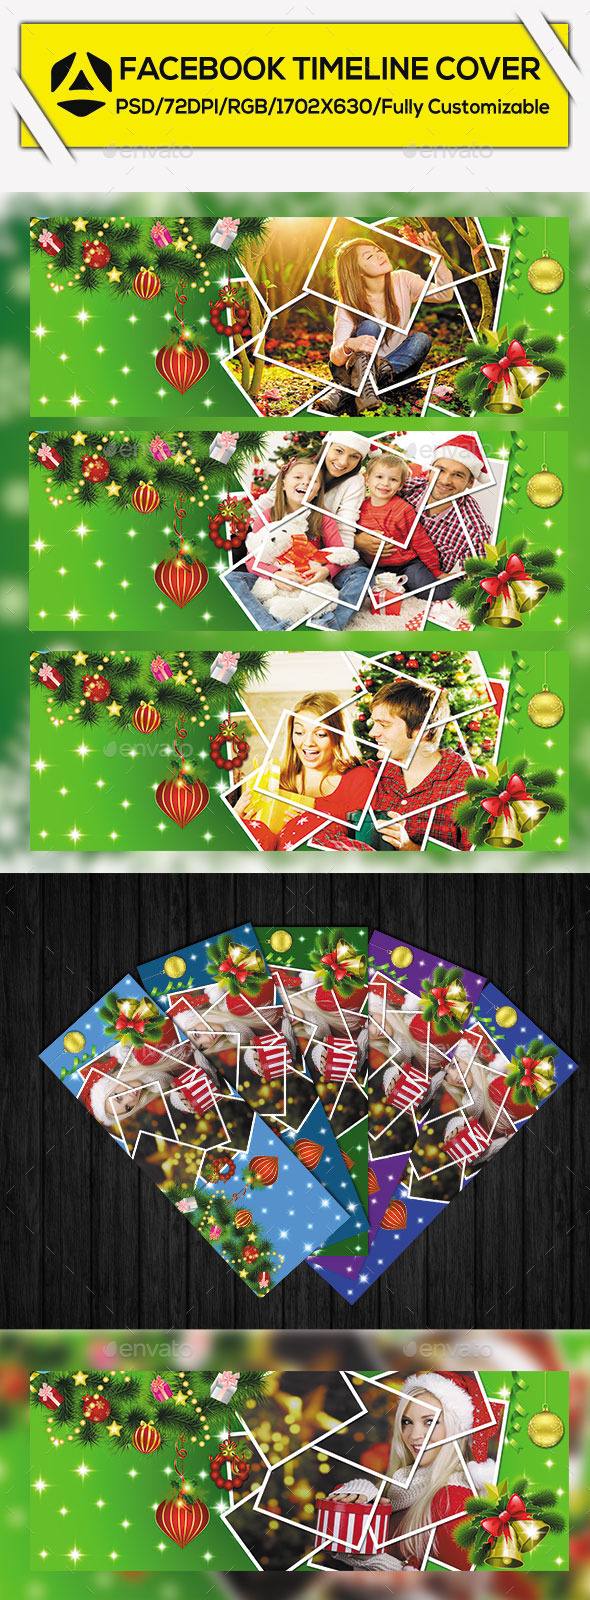 Christmas Facebook Timeline Cover Vol 2